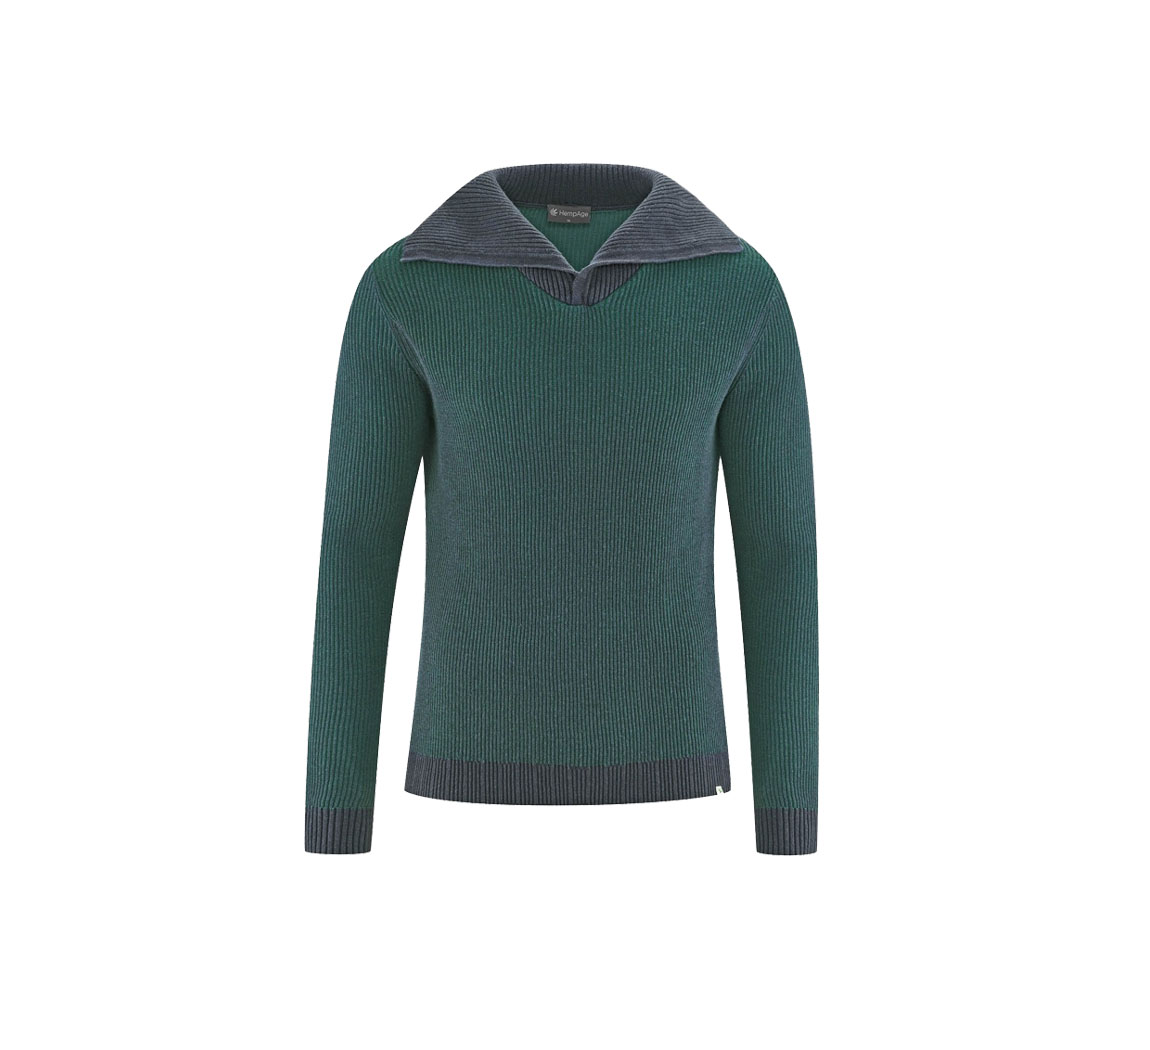 Pull homme col camionneur Pull Troyer